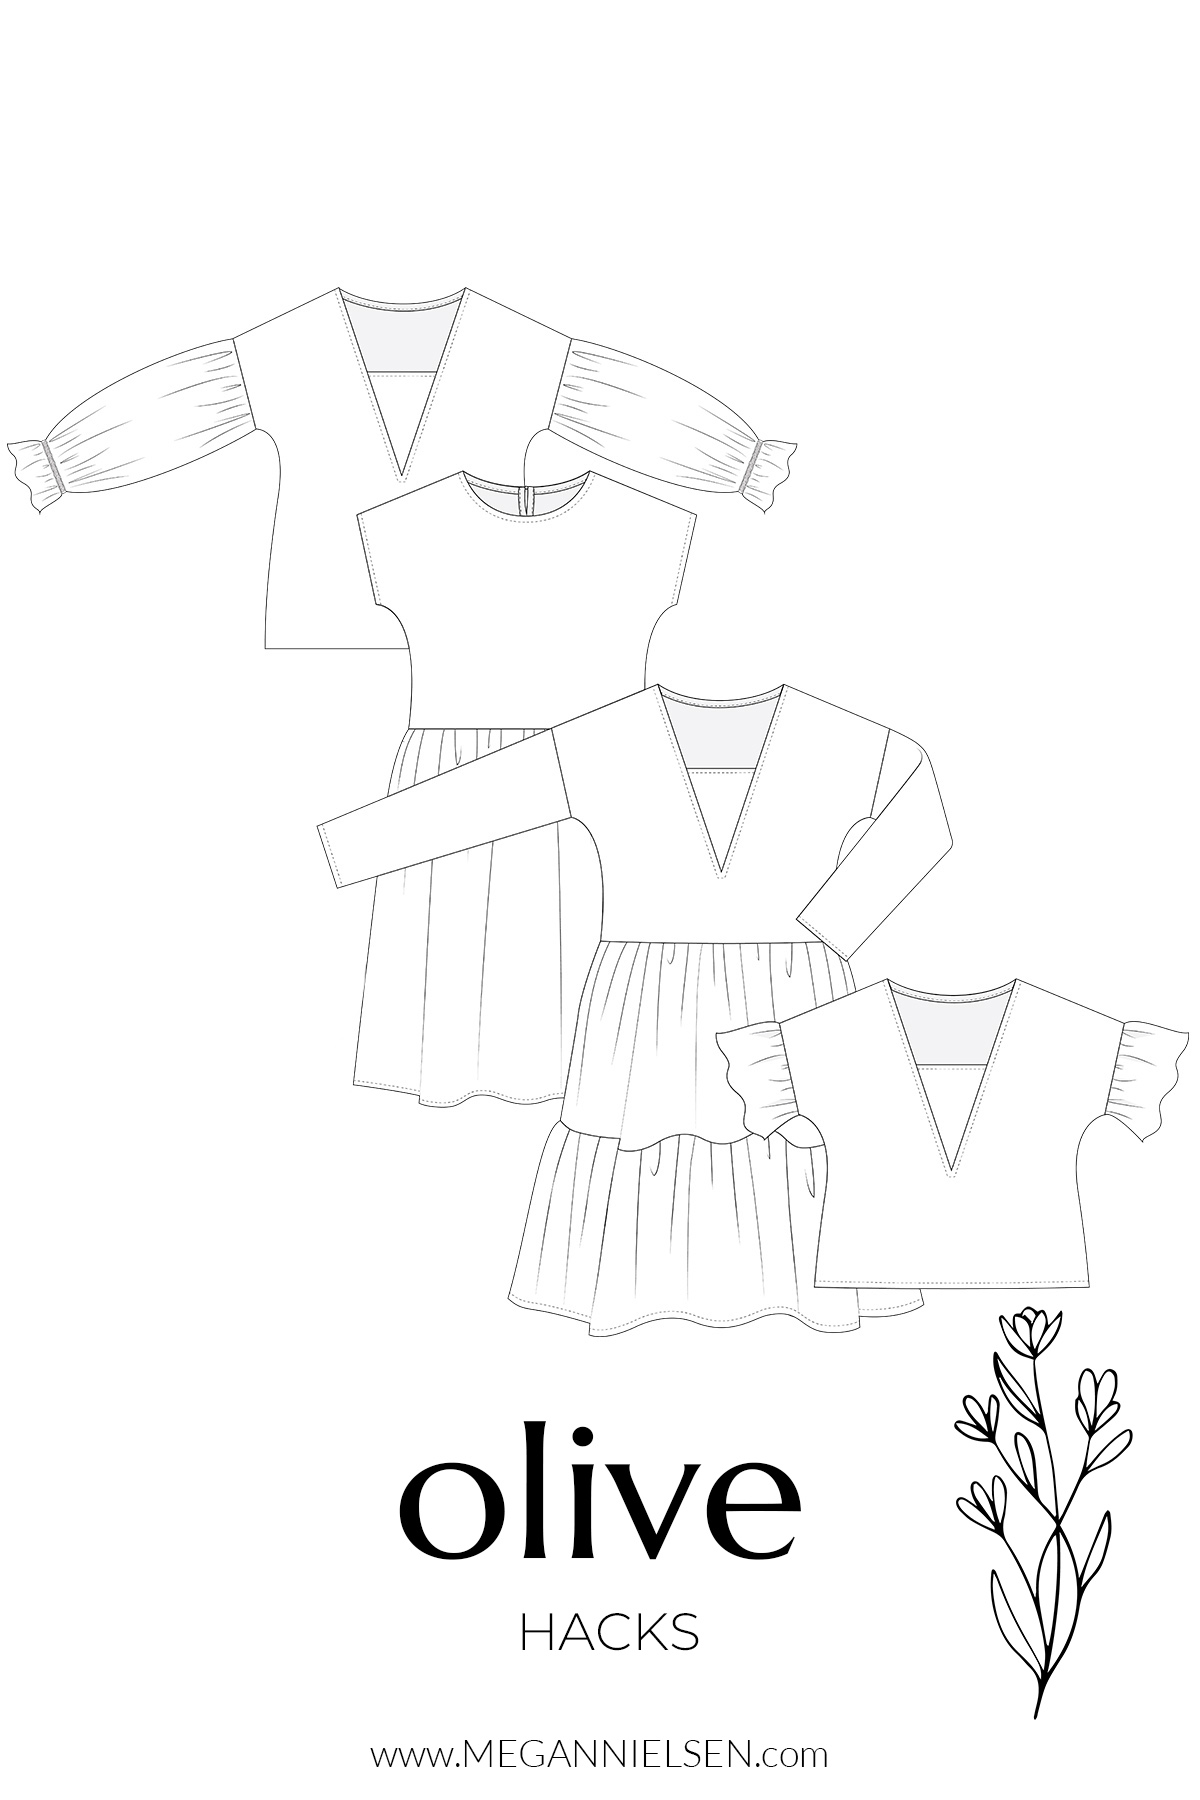 Hacks for the Olive dress and top pattern